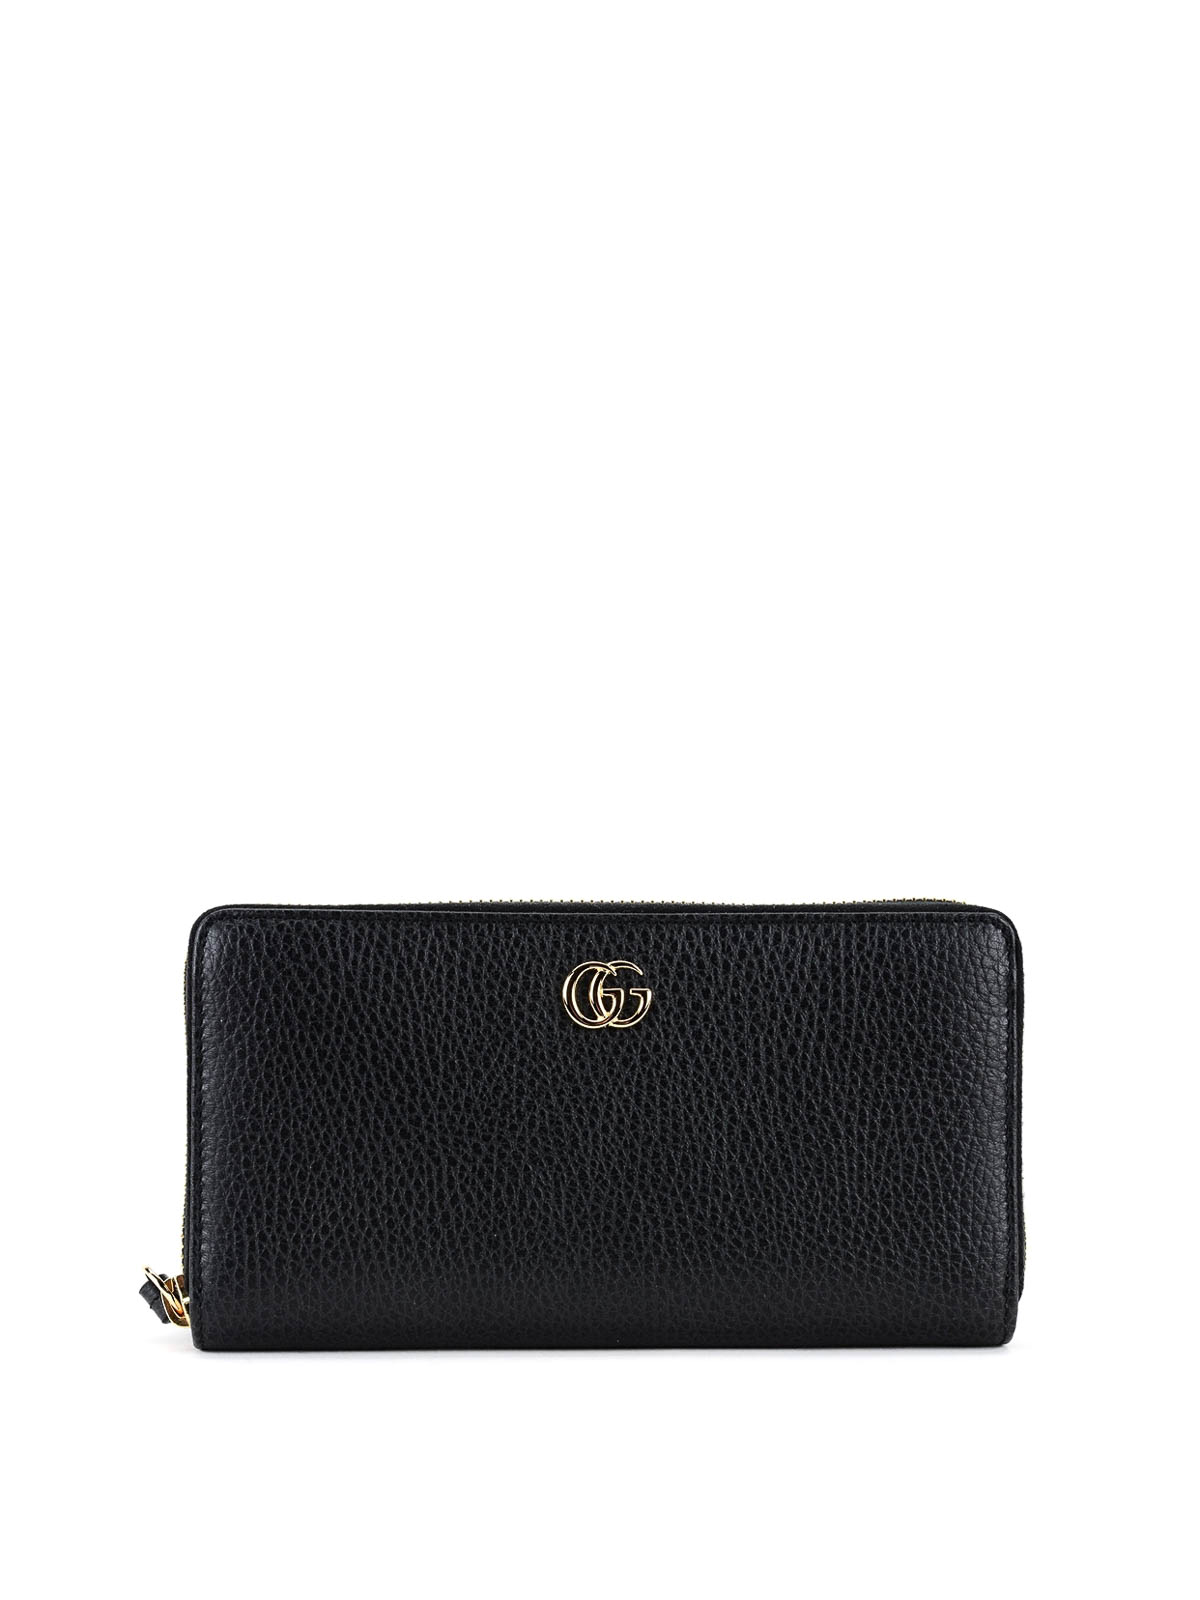 double g leather wallet by gucci wallets purses ikrix. Black Bedroom Furniture Sets. Home Design Ideas